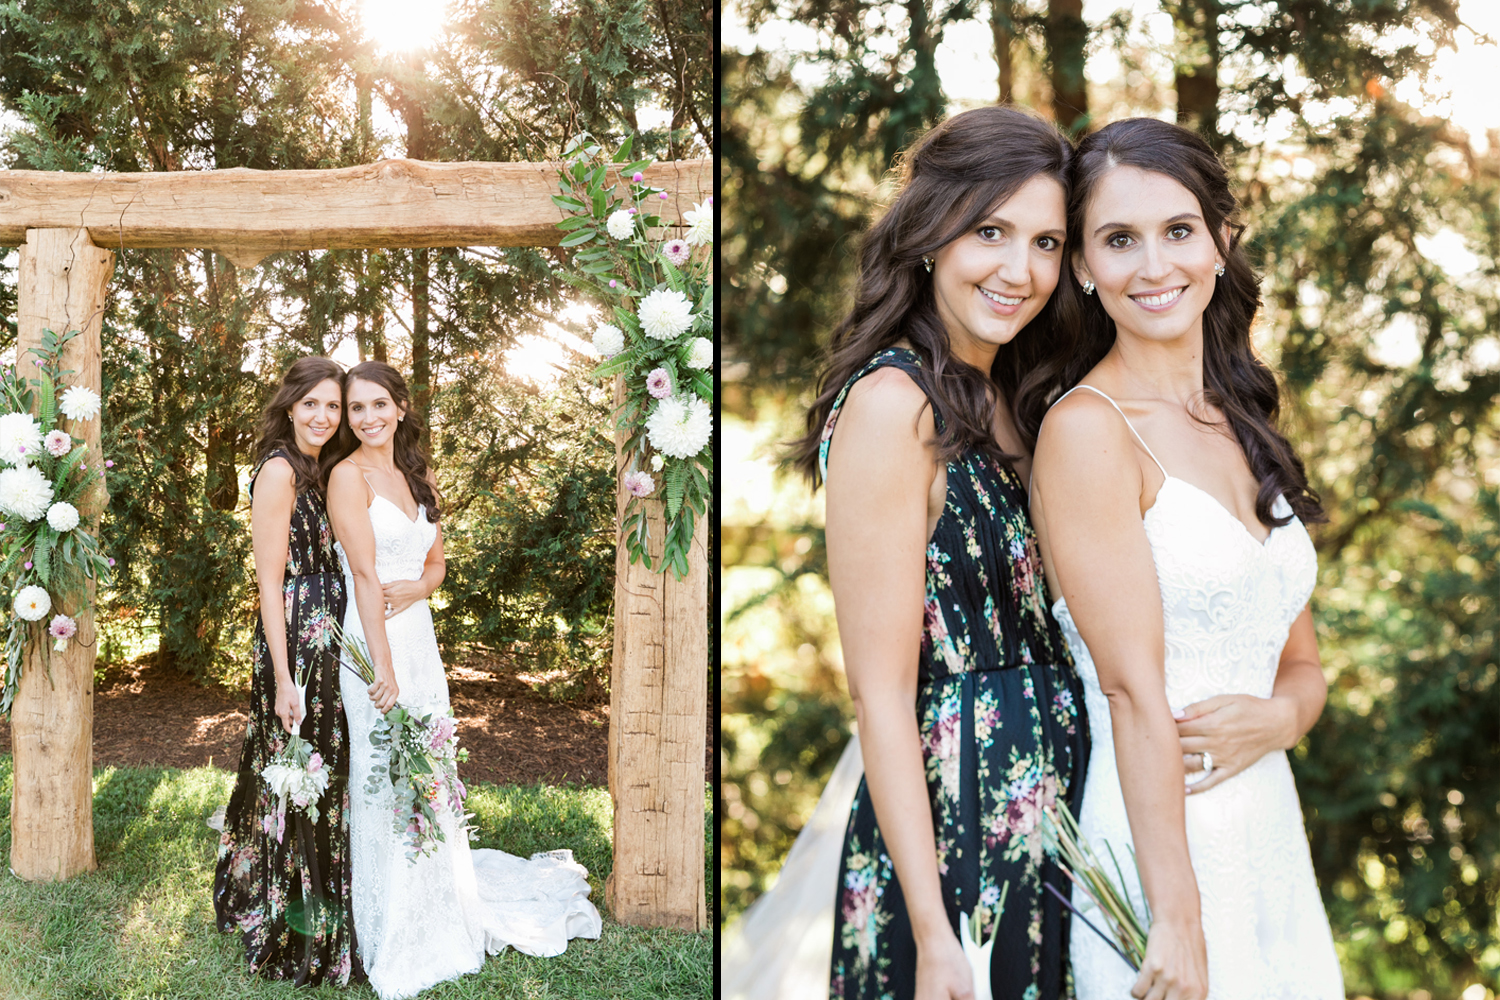 image of bride in modern trousseau gown and bridesmaid in alice and olivia dress